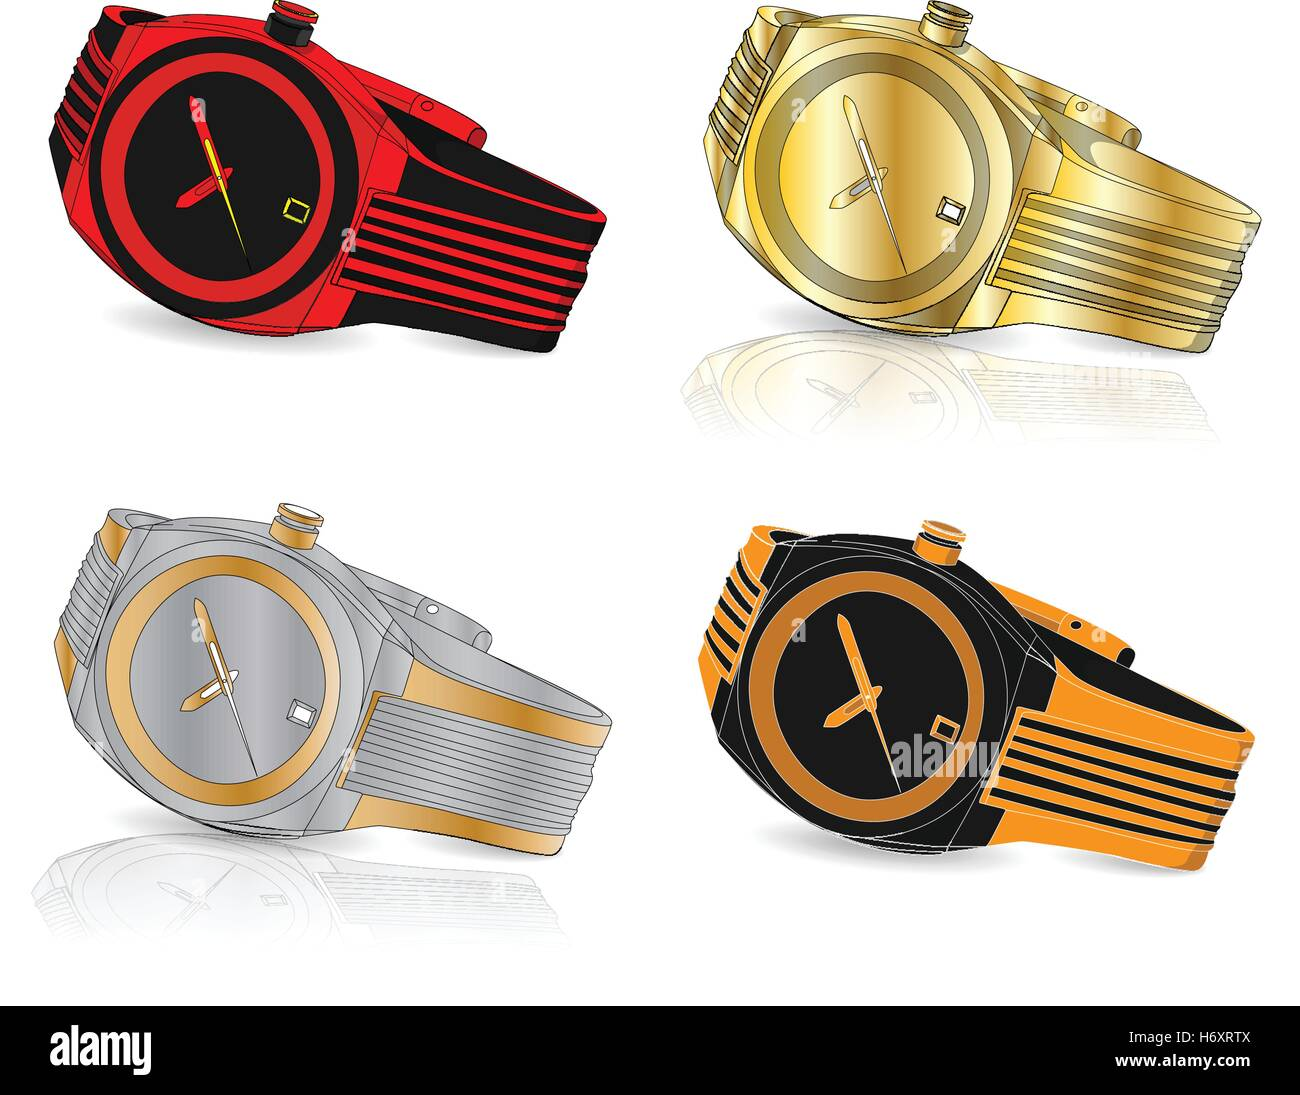 Men watch classic design vector isolated - Stock Image